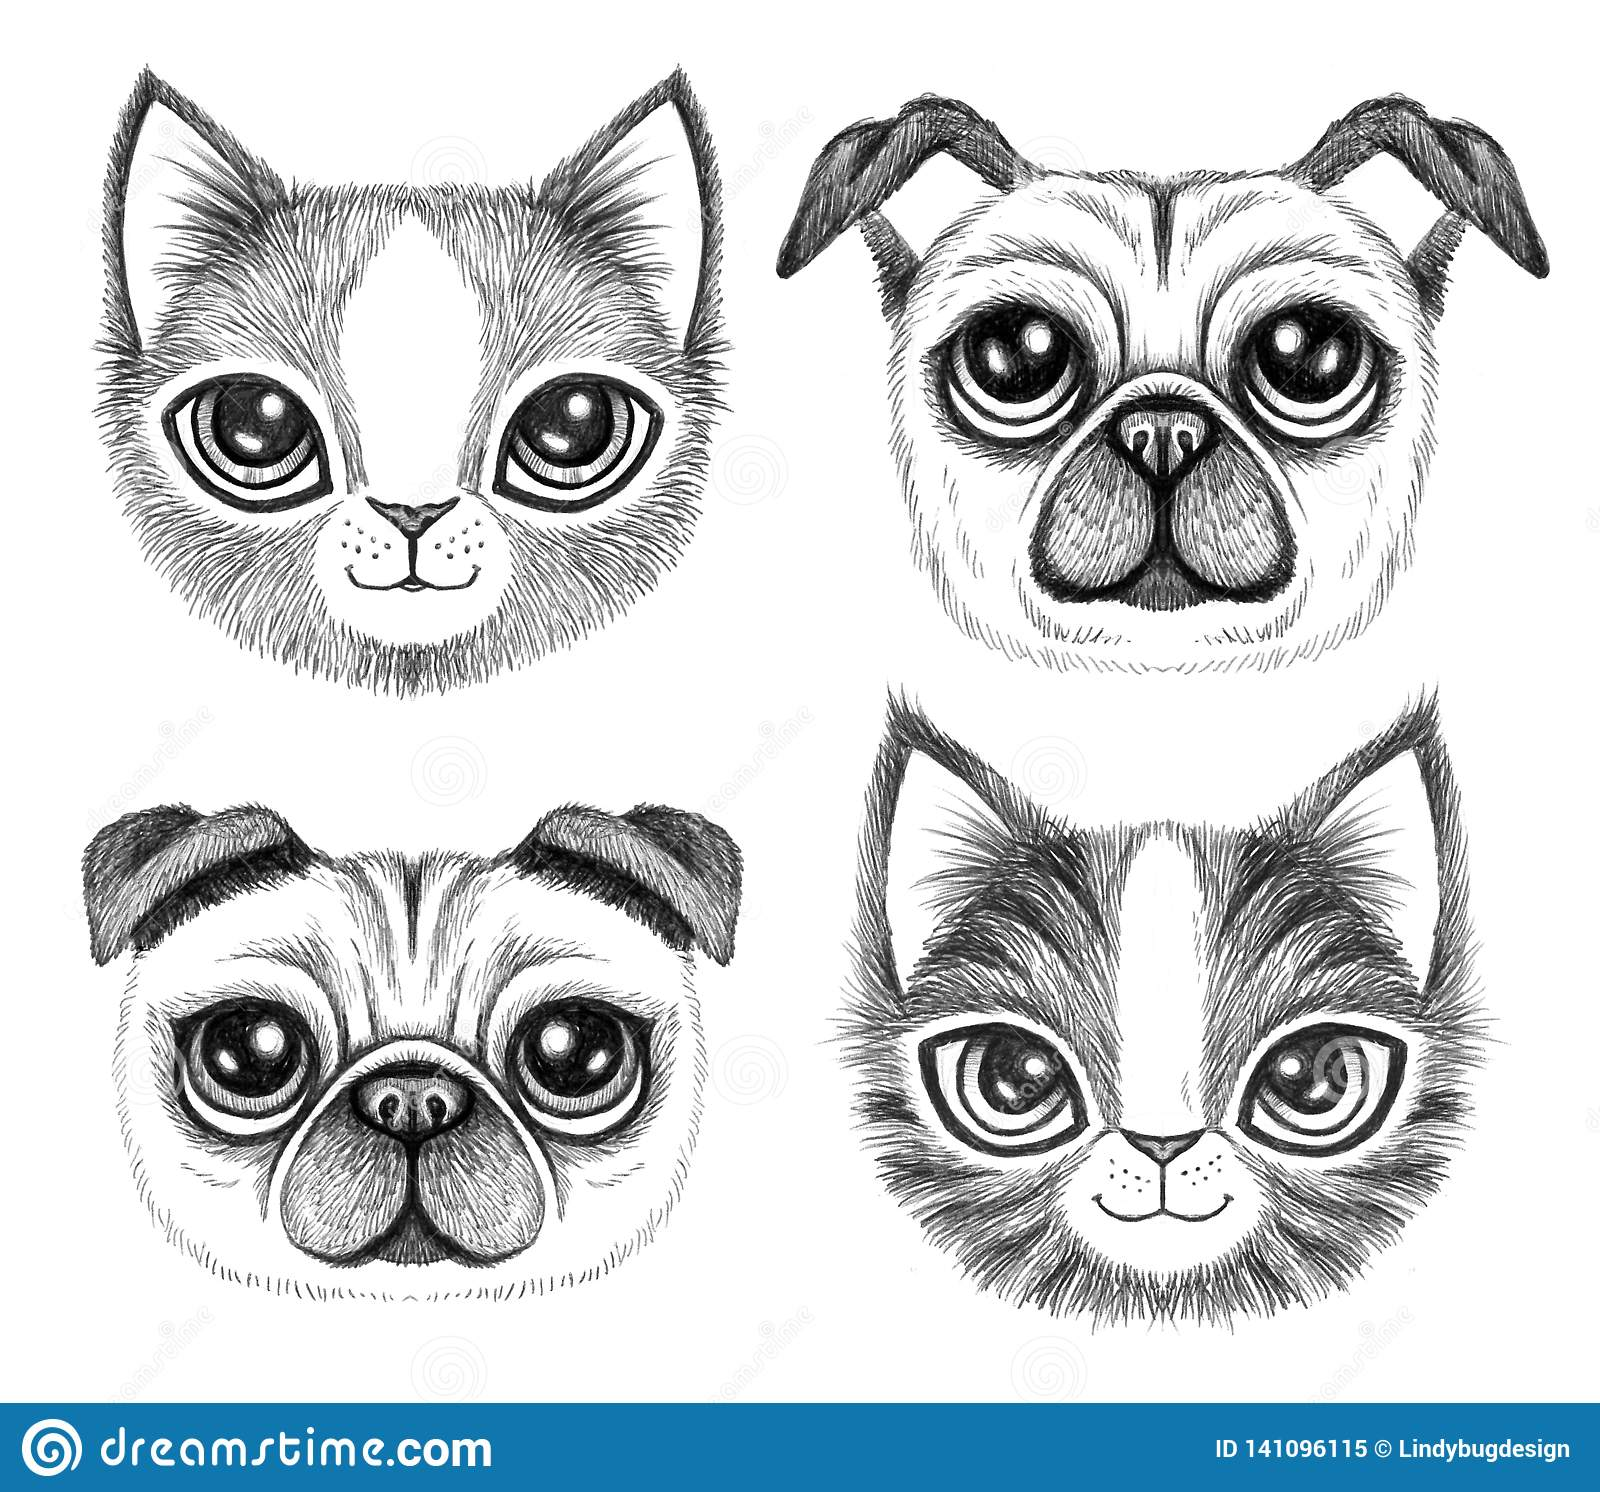 Four sketchy pen drawings of cute dogs and cats